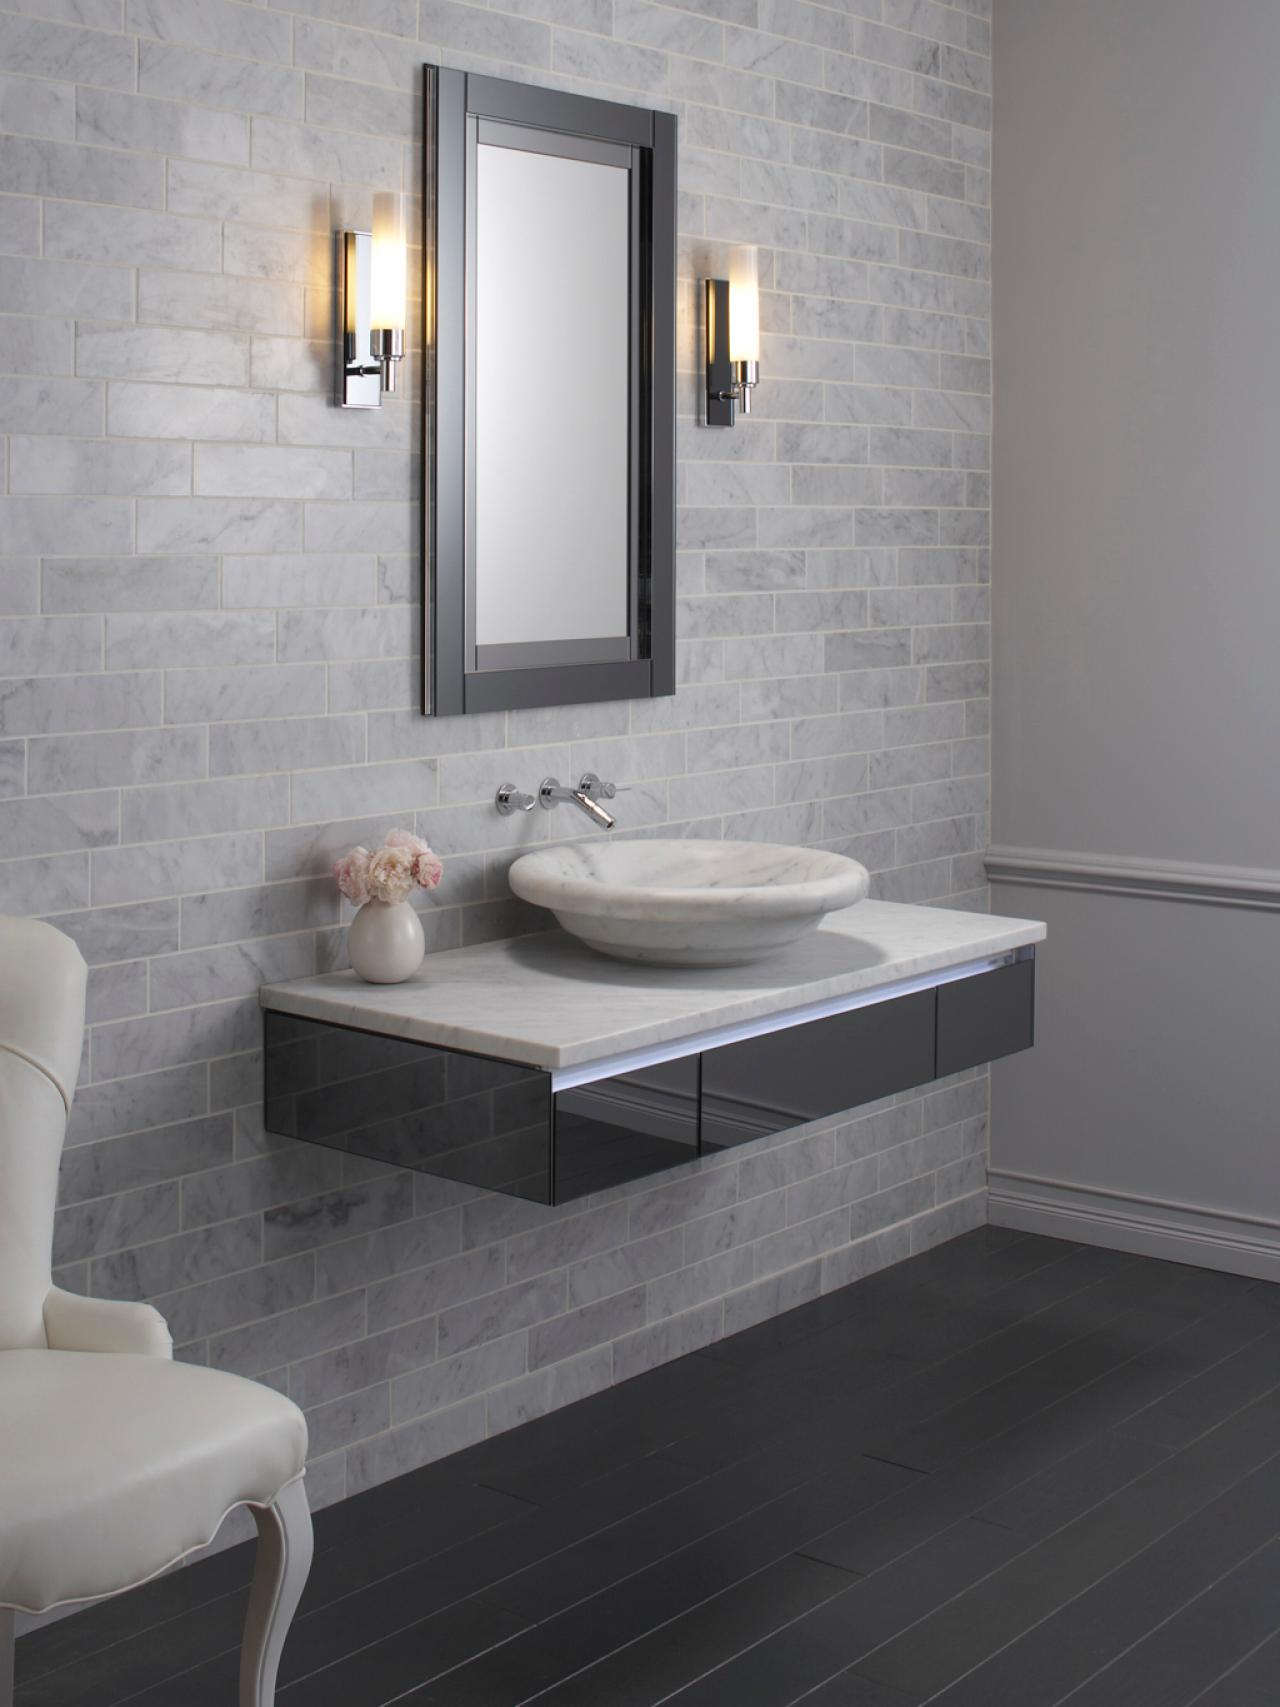 Bathroom space planning hgtv for Bathroom sink designs